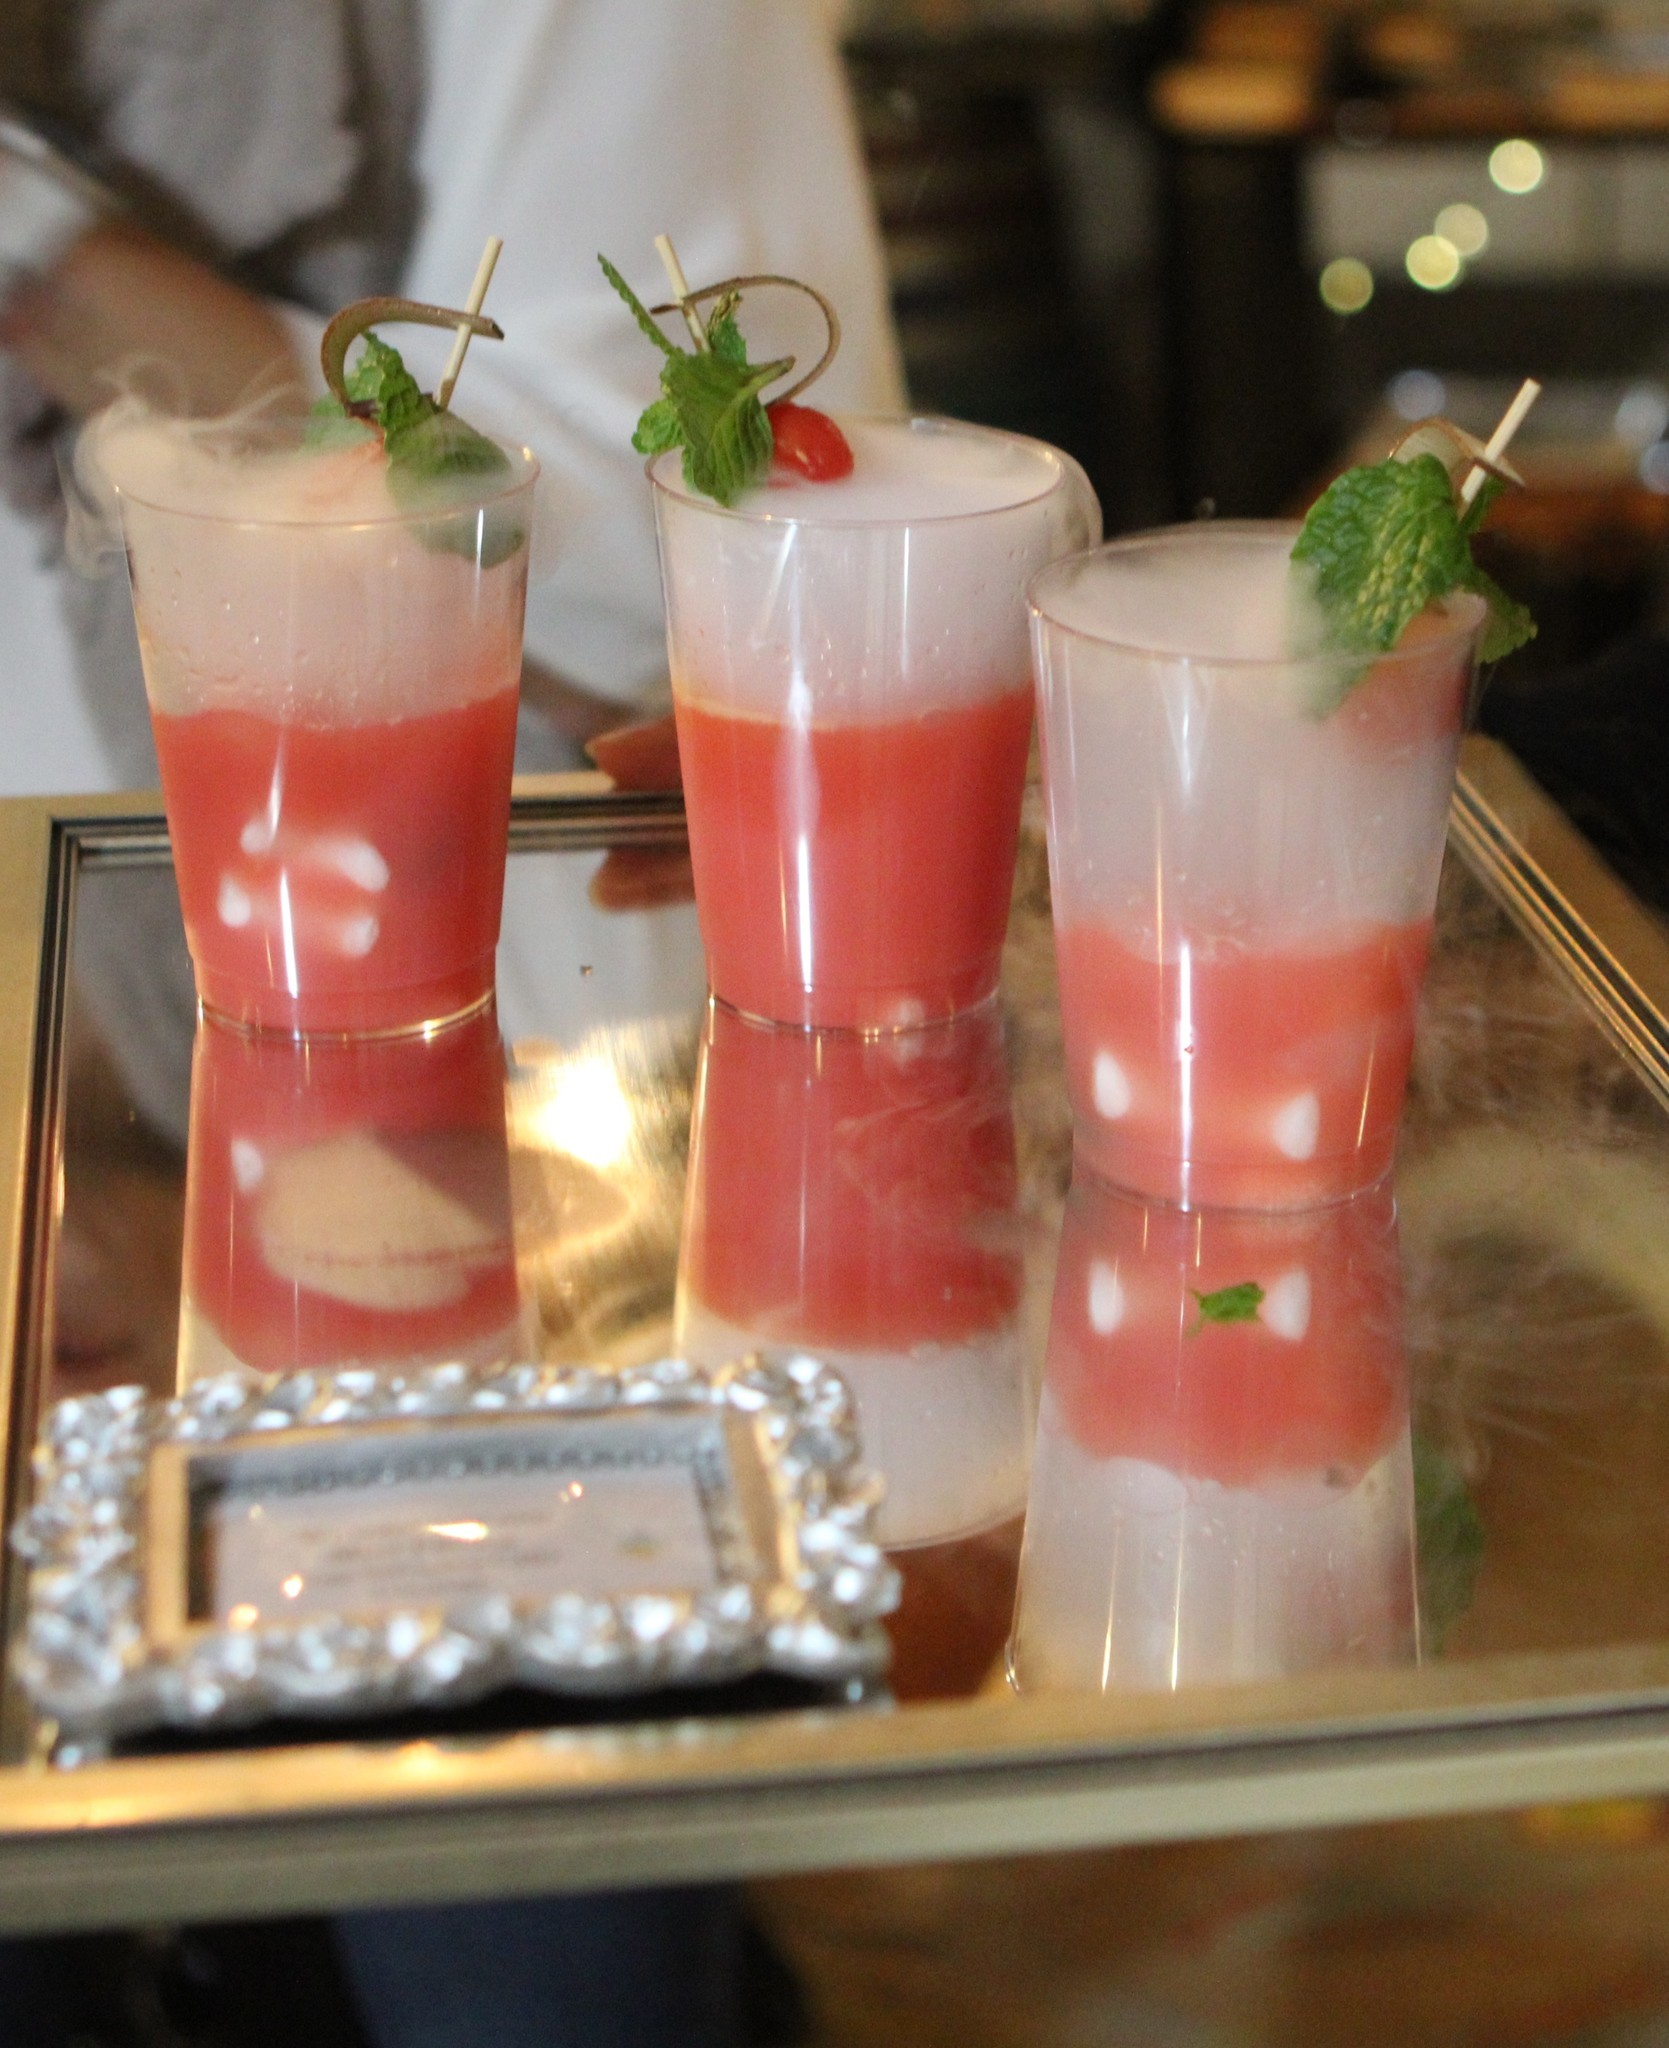 A server offers Watermelon Fresca with Mint, which contains 10 mg CBD per cup.